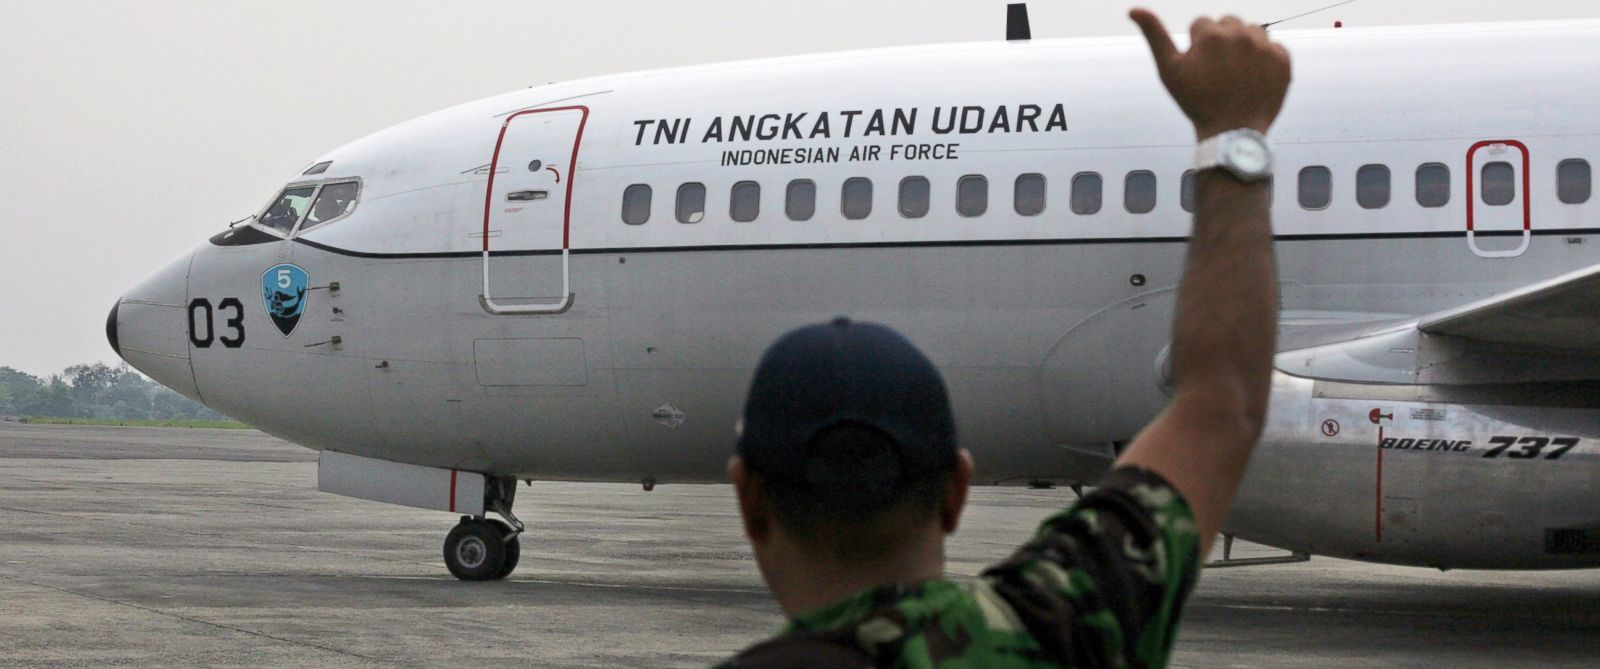 "PHOTO: A ground crew gives an OK sign to the pilots of an Indonesian Air Force Boeing 737 ""Surveiller"" as they prepare to take off for a search operation for the missing Malaysia Airlines jetliner MH370, in Indonesia, Saturday, March 15, 2014."